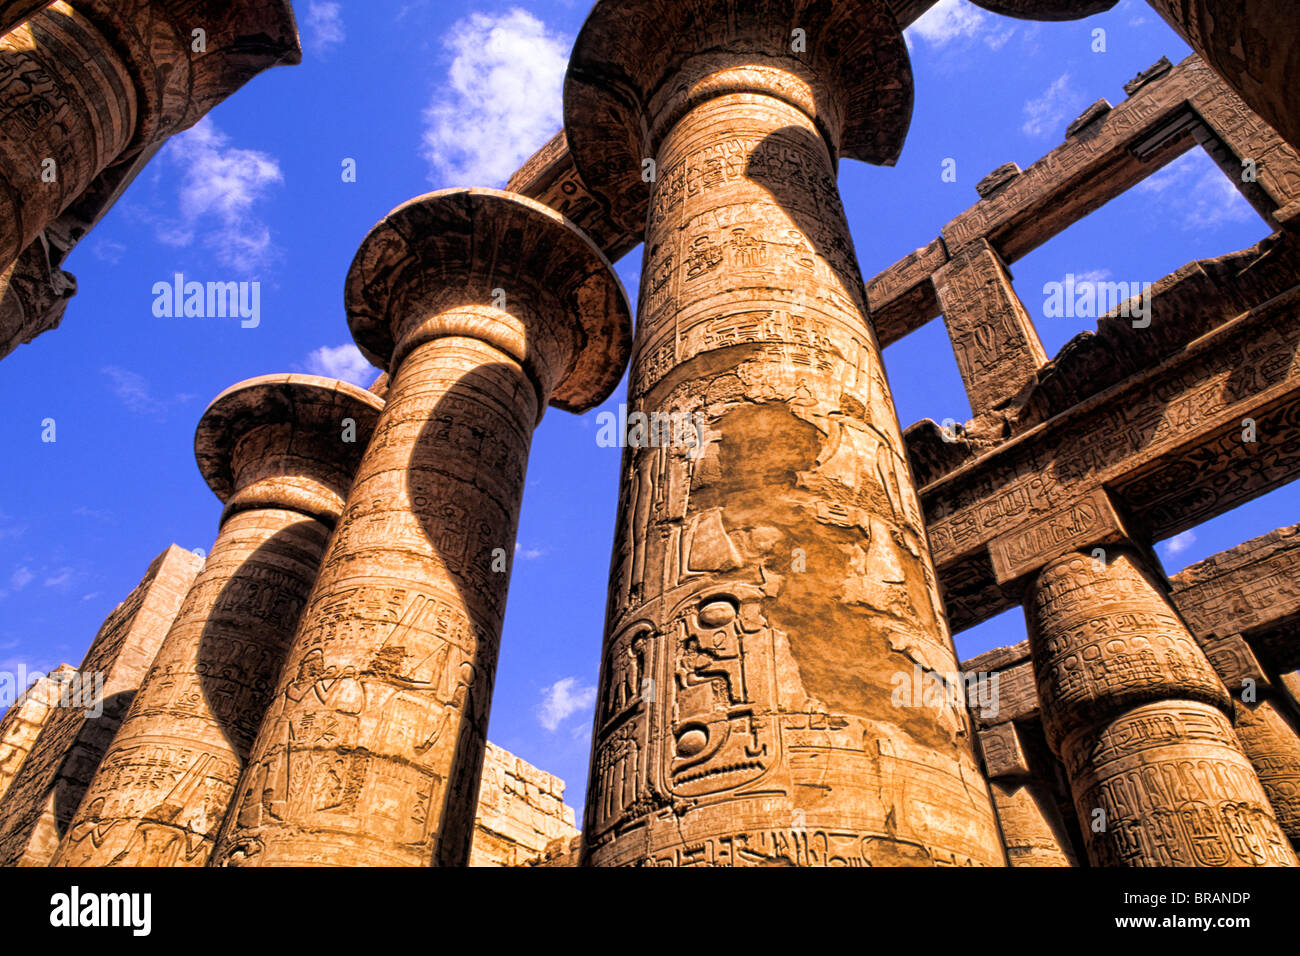 Ancient ruins of kings at the Temple of Karnak in Luxor Egypt Stock Photo